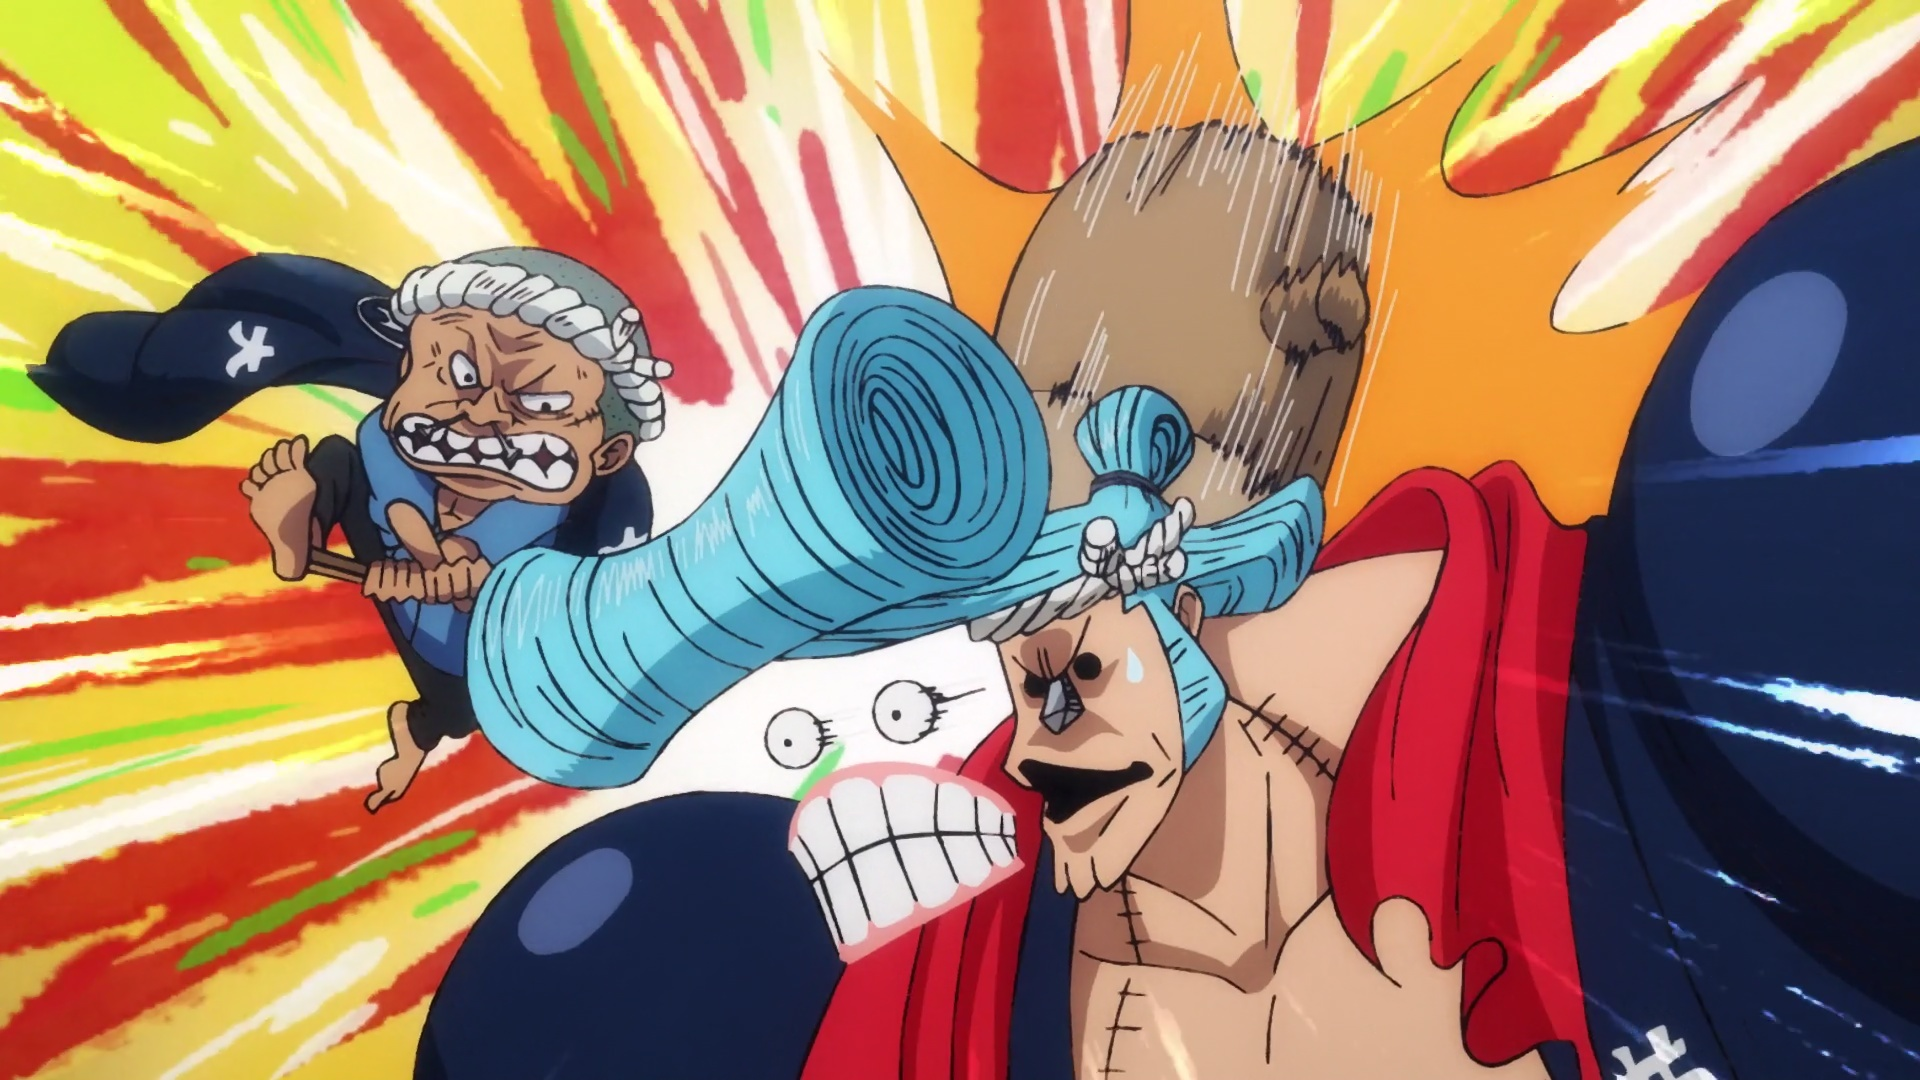 ONE PIECE 922 VOSTFR SD/HD/HD 10BITS/FHD News background